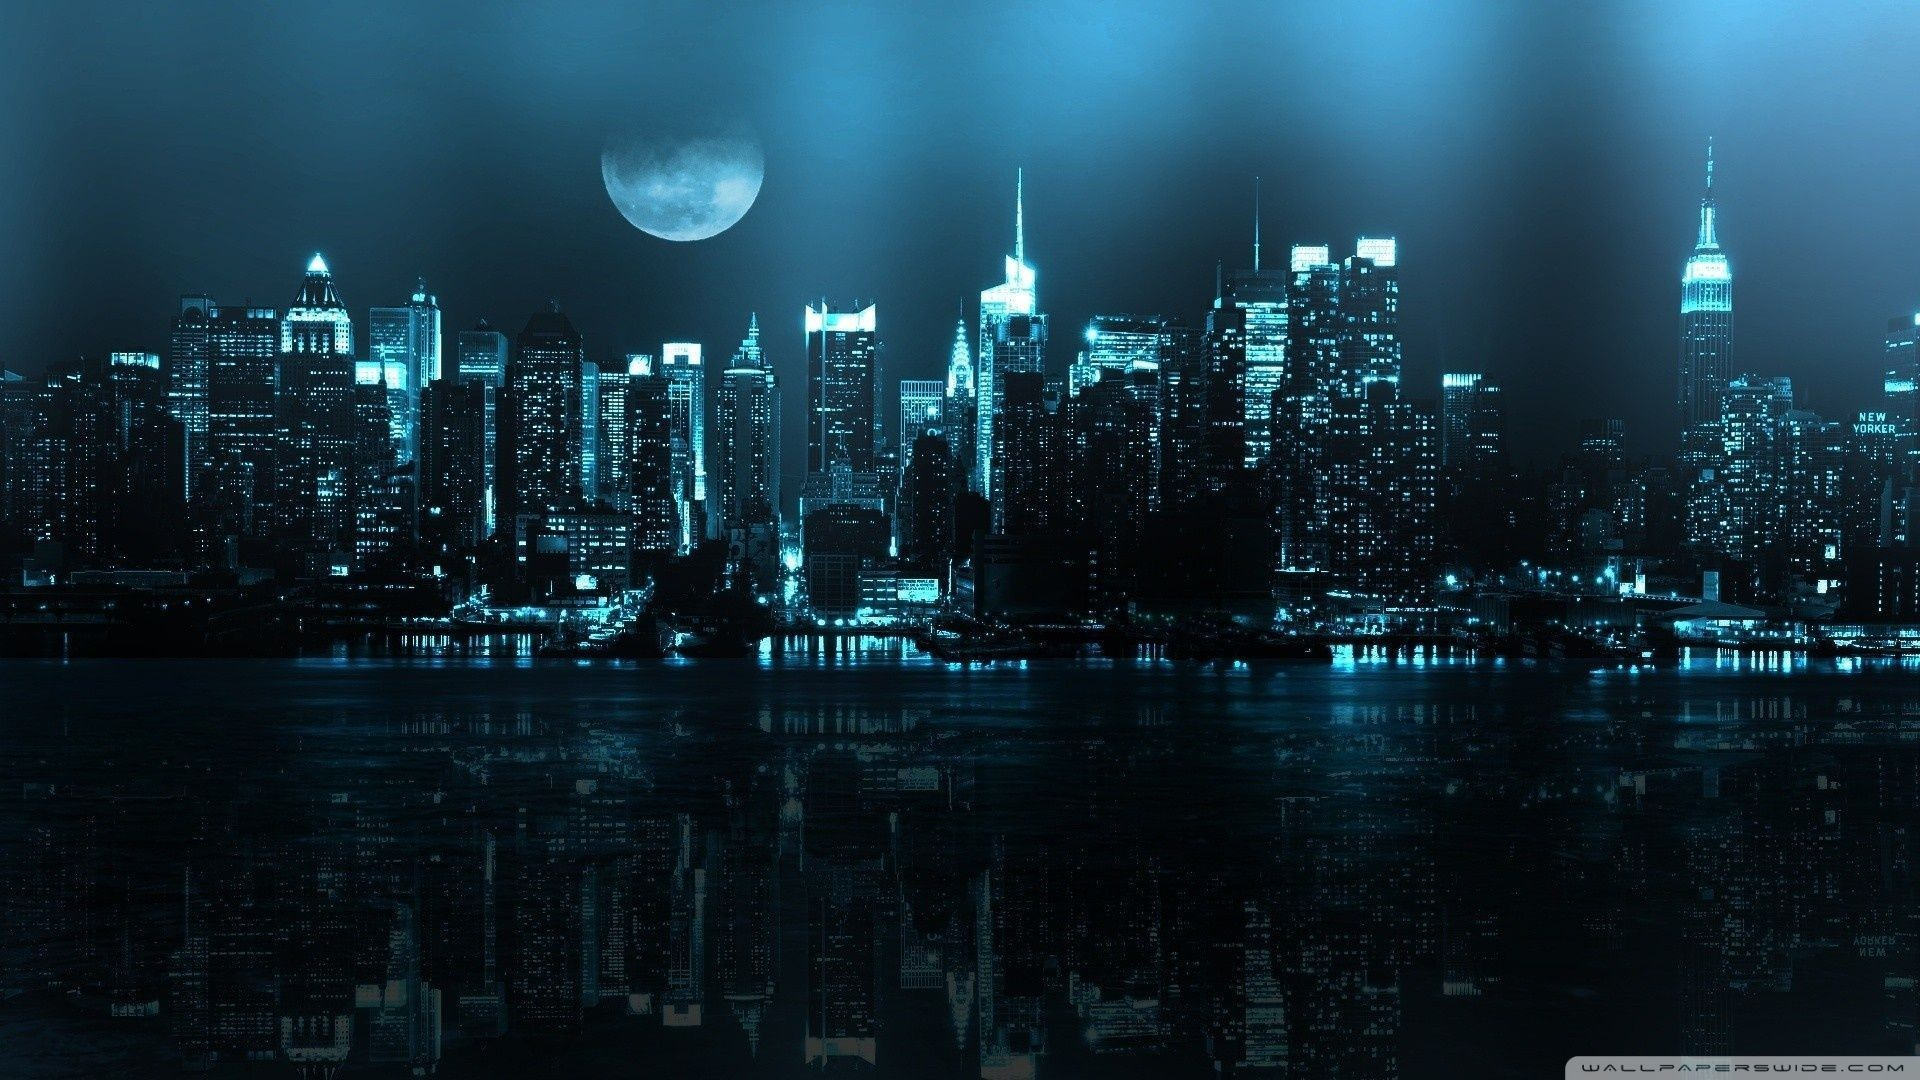 HD City Wallpapers 1080p 83 images